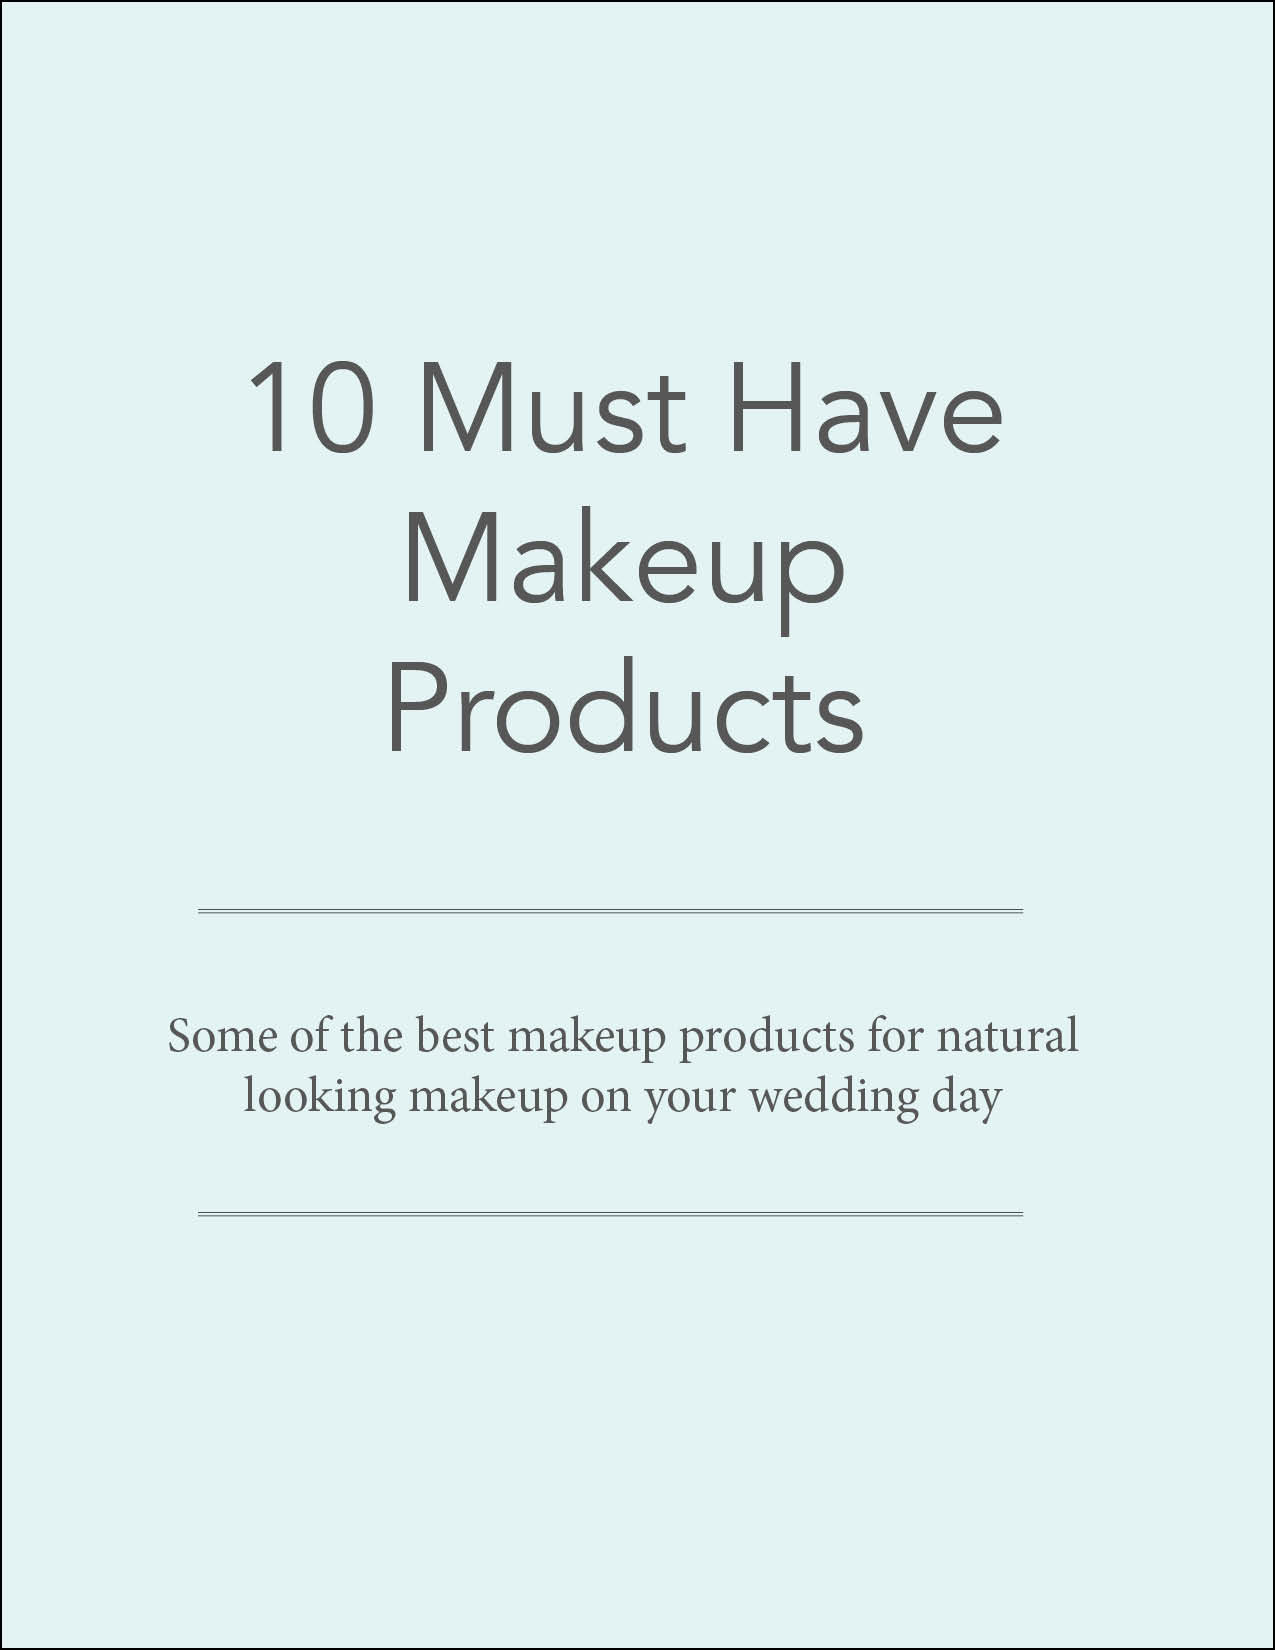 10 must have makeup products